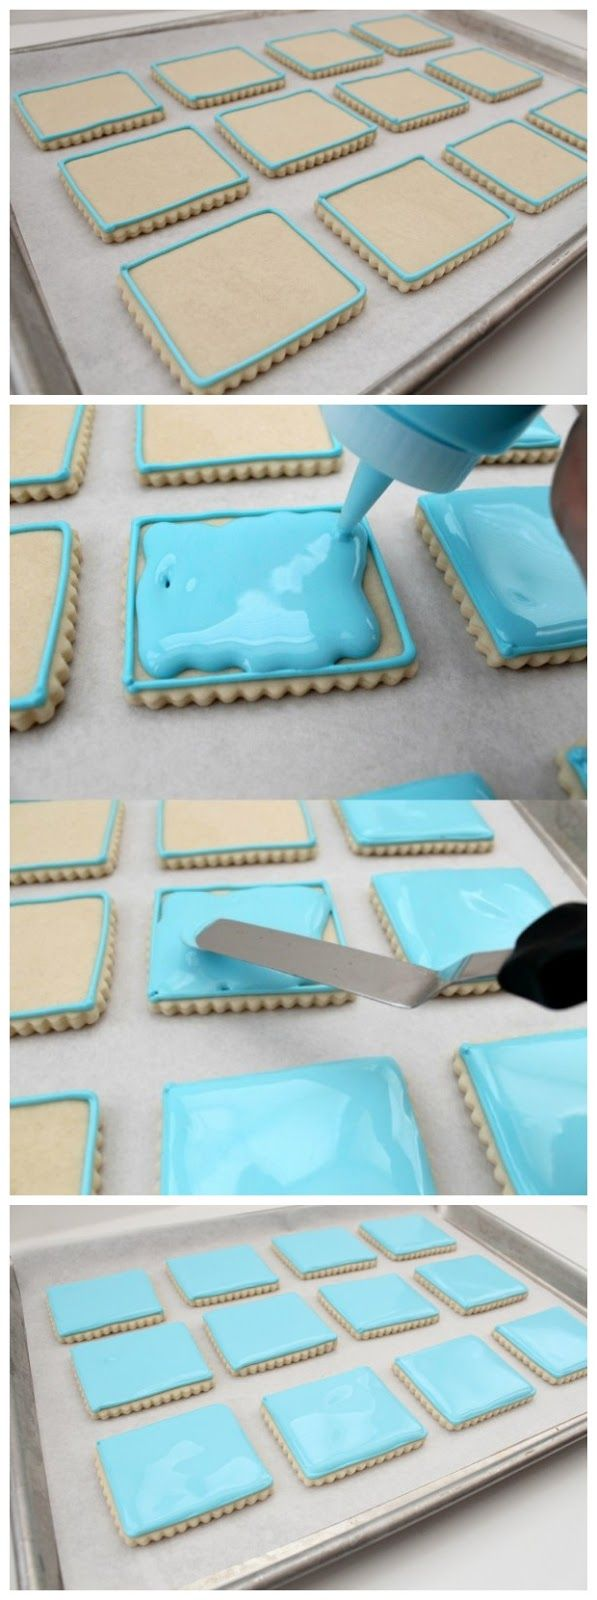 Outlining and Flooding Cookies with Royal Icing